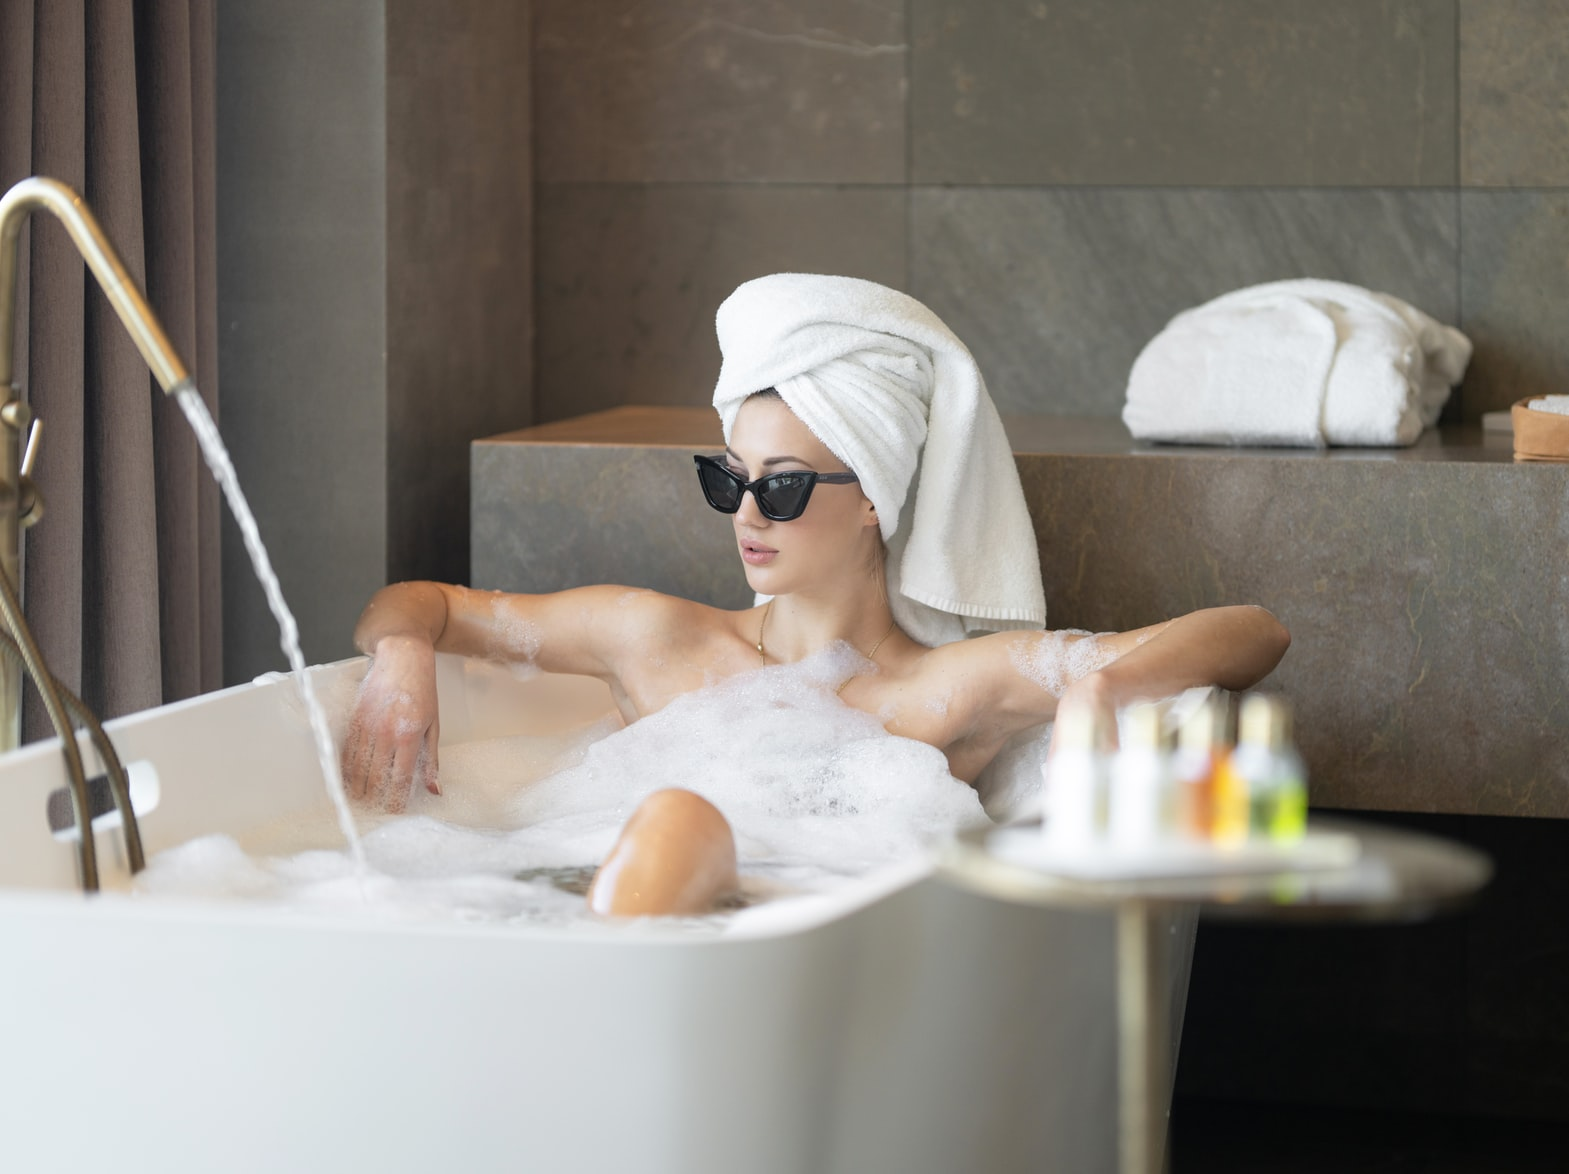 Take a bubble bath - what to do when you're bored